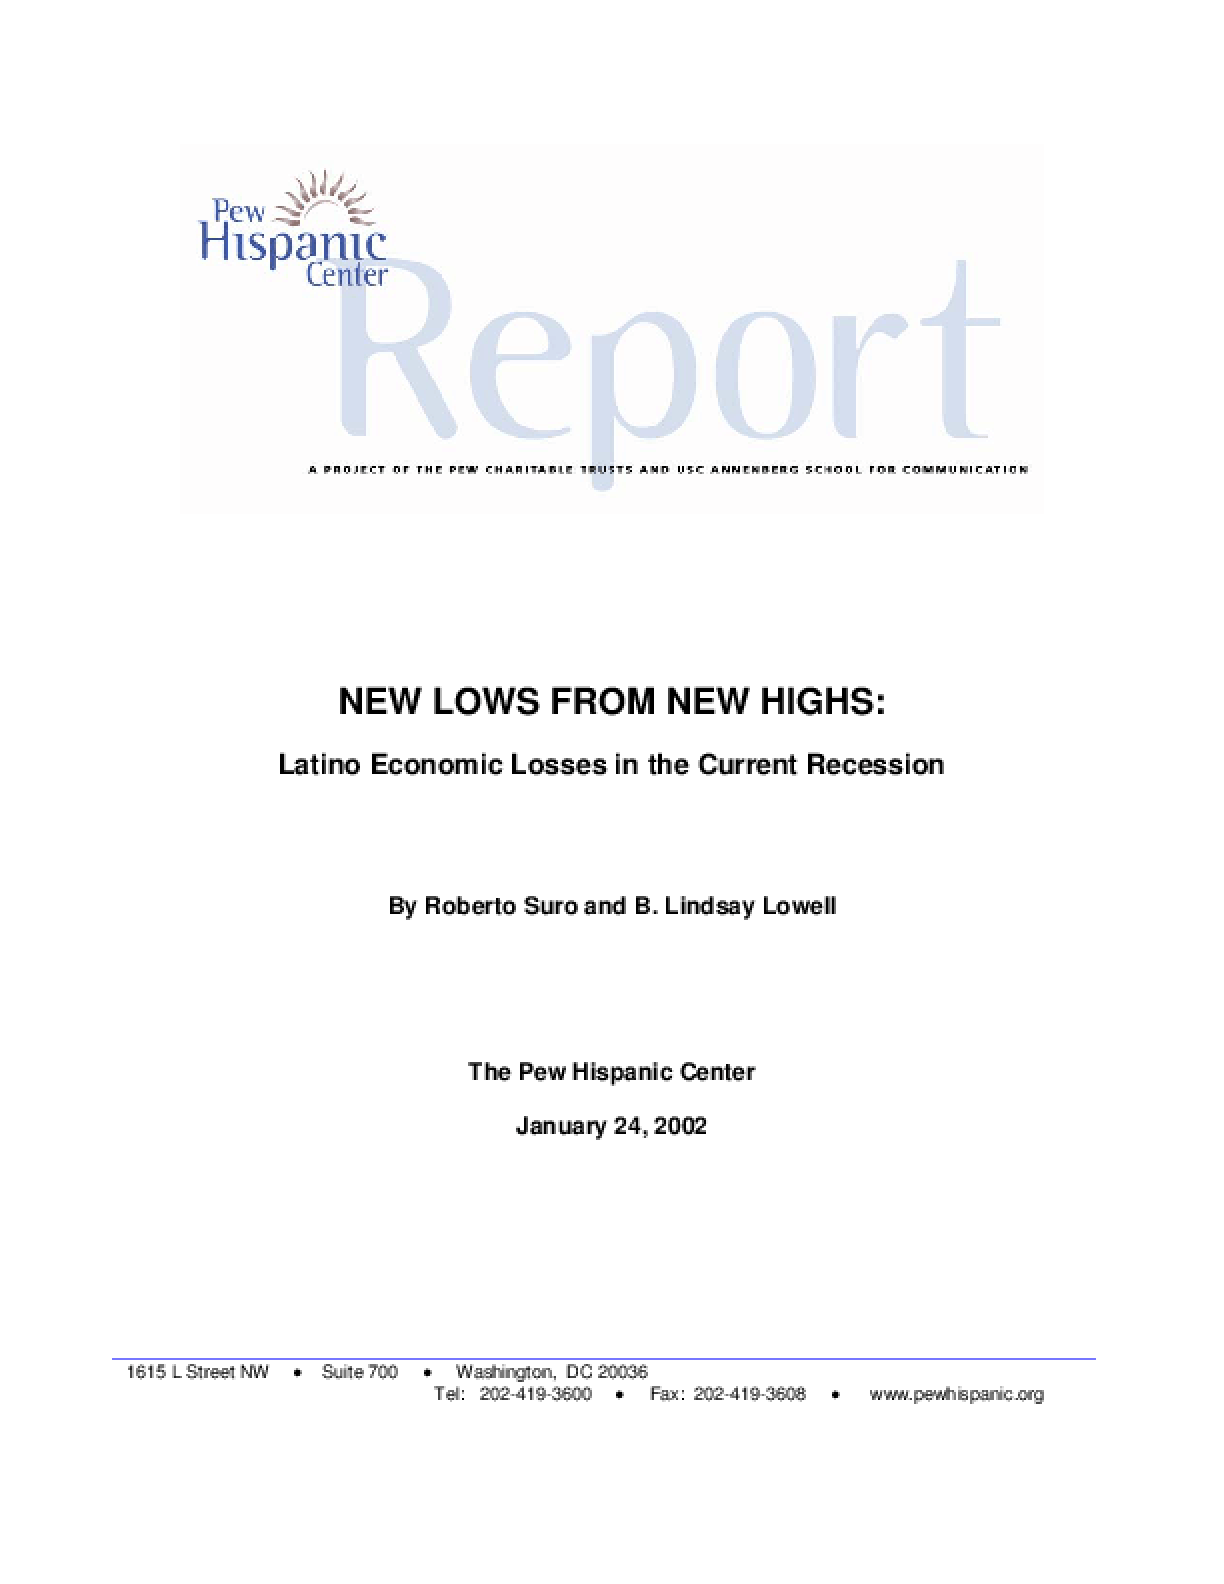 New Lows From New Highs: Latino Economic Losses in the Current Recession